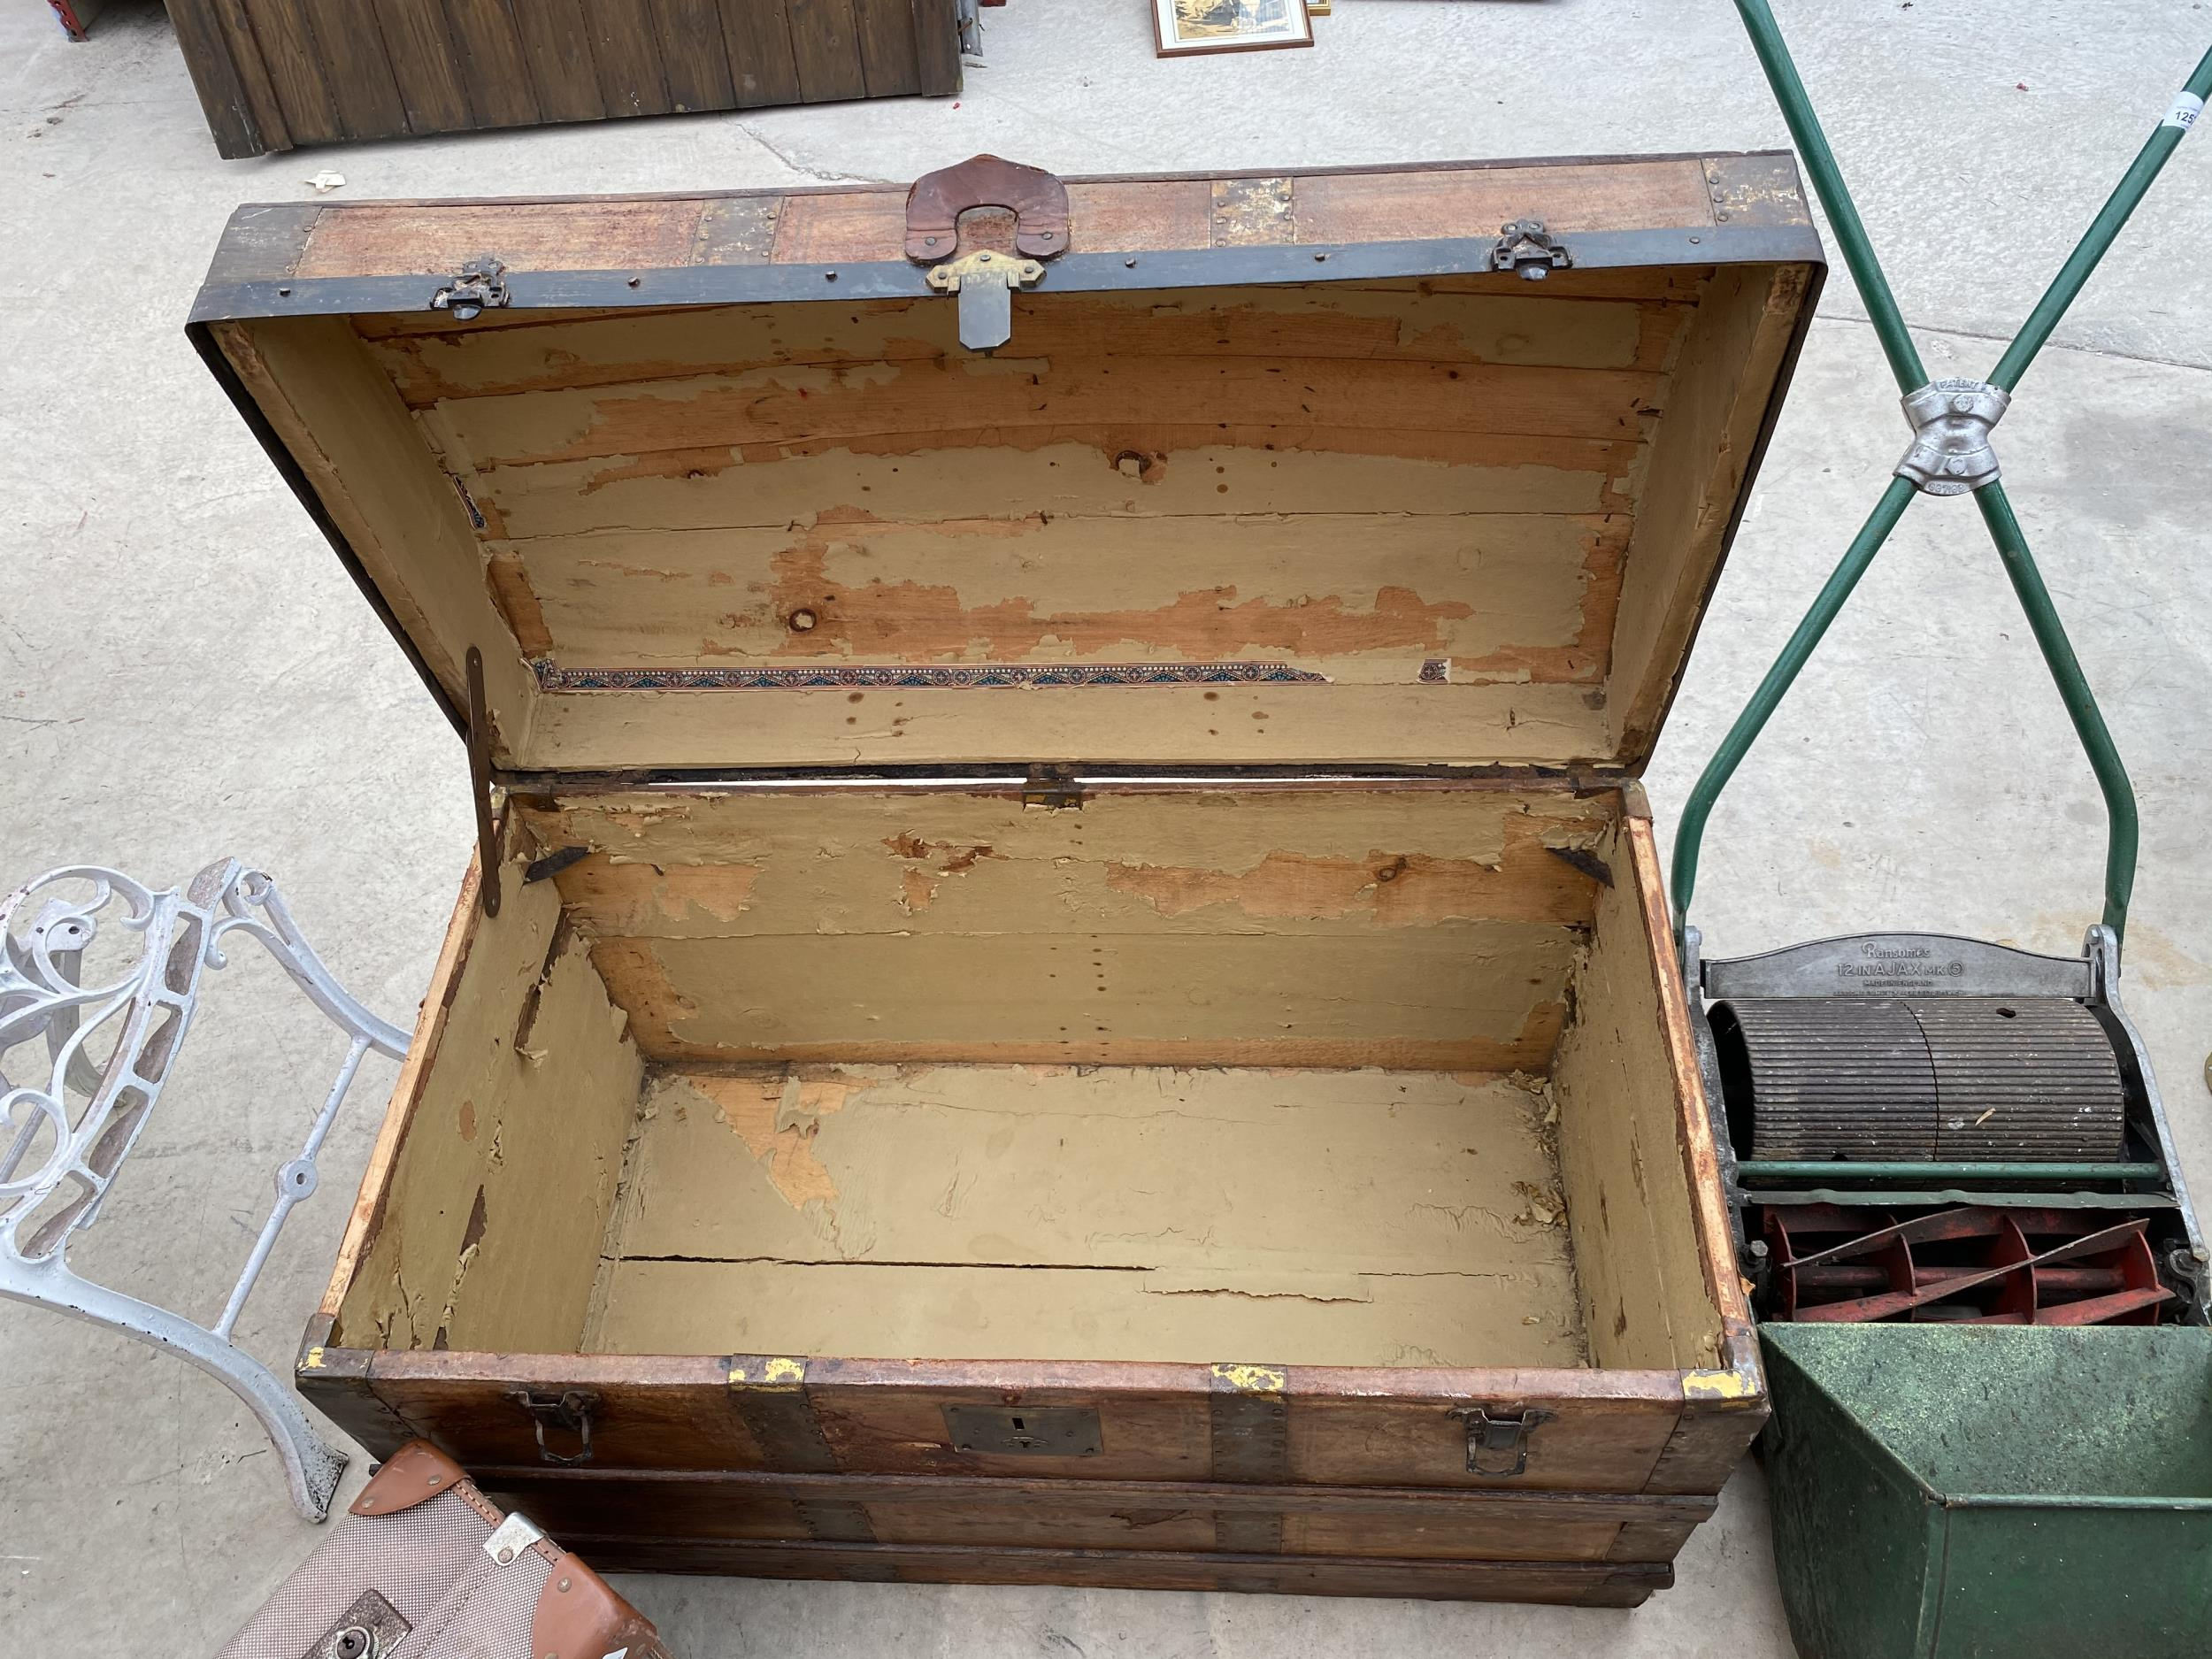 A VINTAGE WOODEN STORAGE CHEST WITH DECORATIVE WOODEN BANDING AND METAL STUD WORK AND A FURTHER - Image 3 of 4